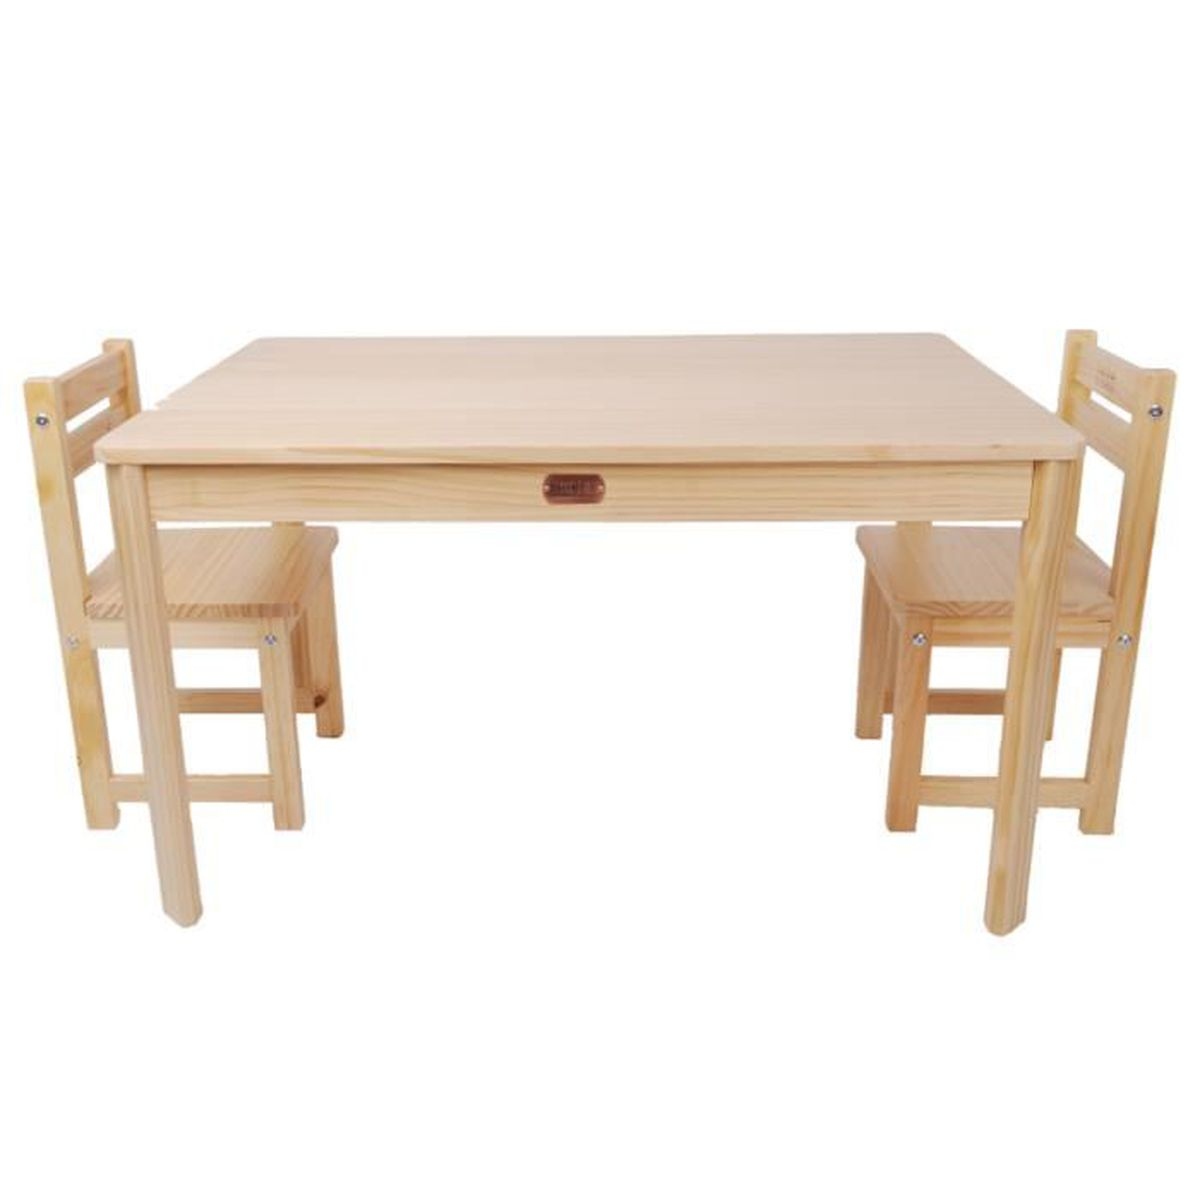 ensemble table rectangulaire et 2 chaises pour enfant en bois coloris naturel achat vente. Black Bedroom Furniture Sets. Home Design Ideas